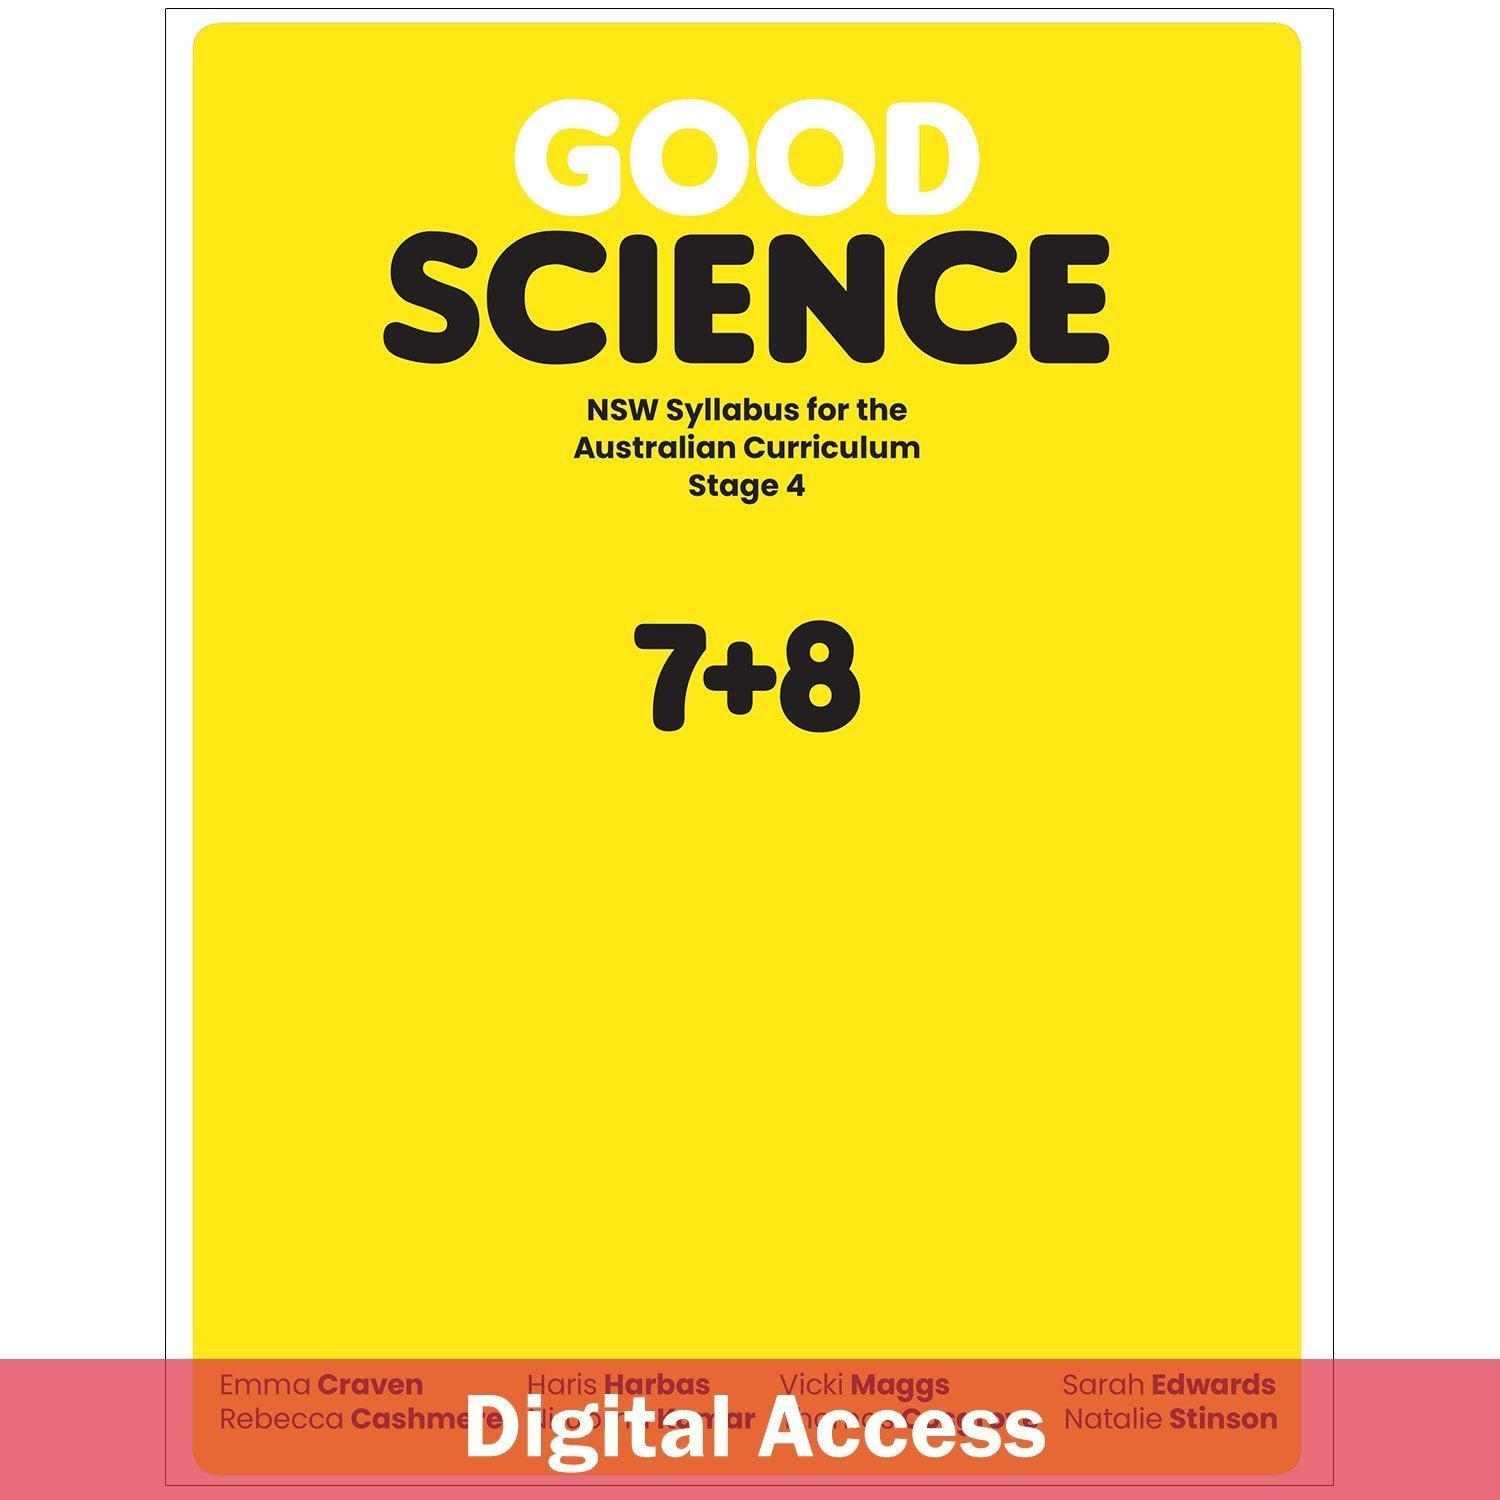 Good Science NSW Syllabus Stage 4 Student Digital Access